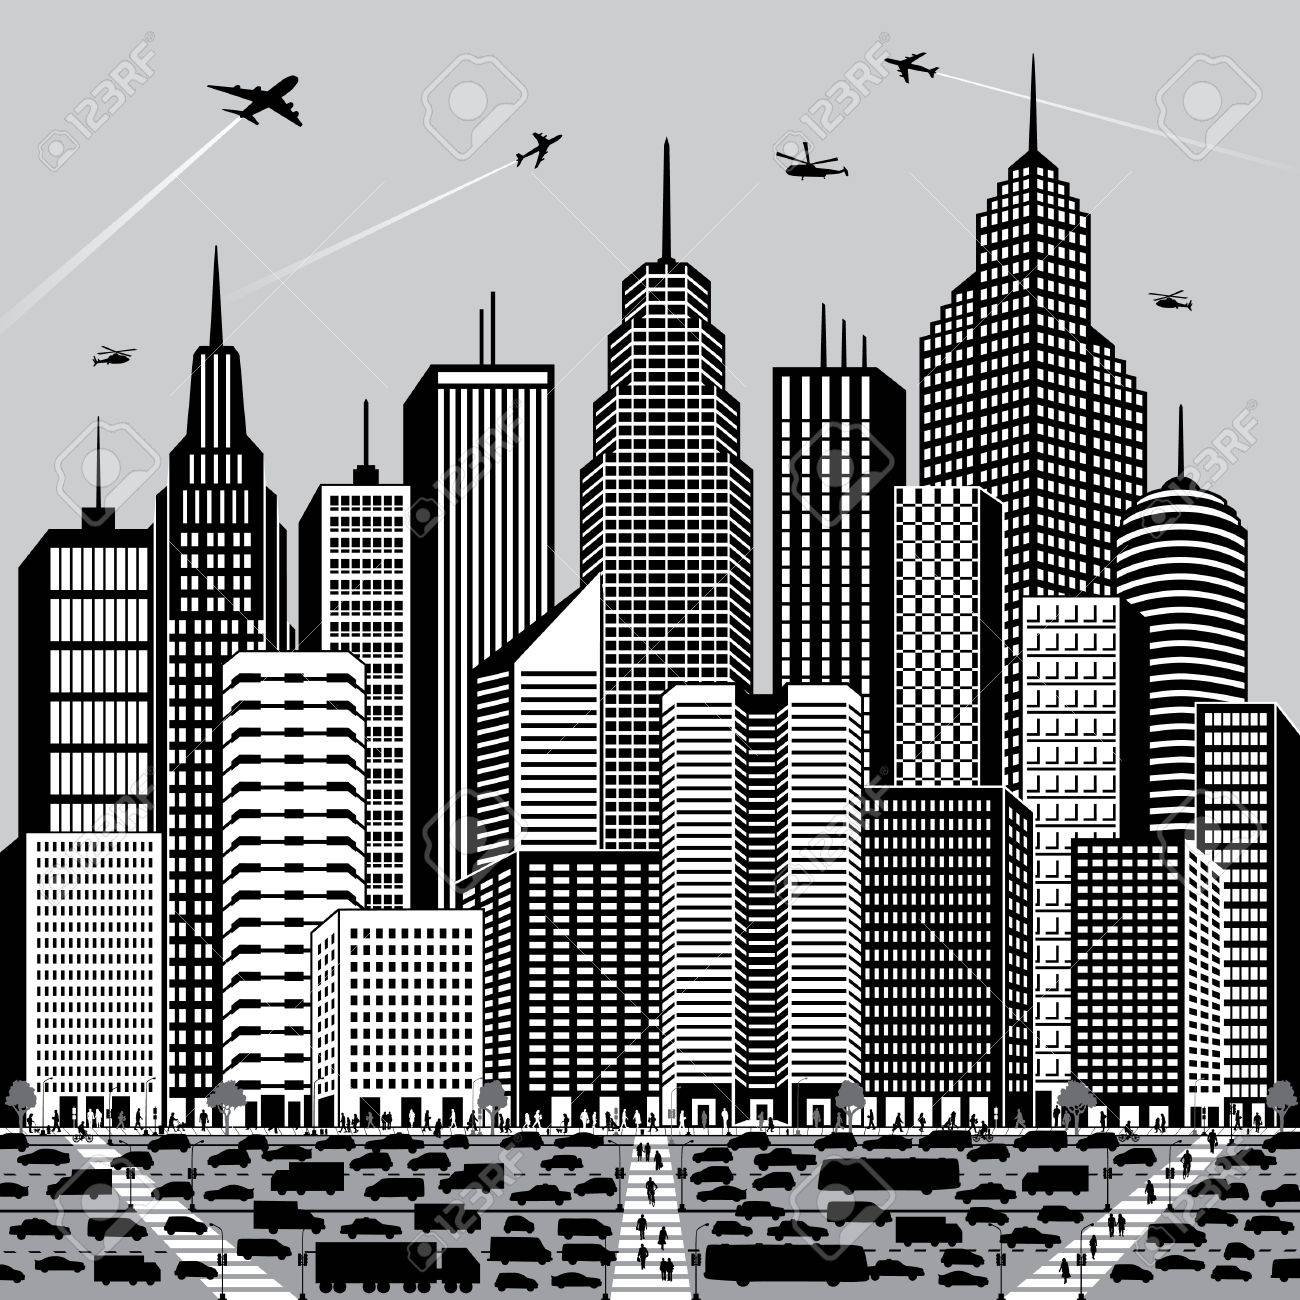 Vector illustration of a generic cityscape with people and vehicles. Stock Vector - 9756074